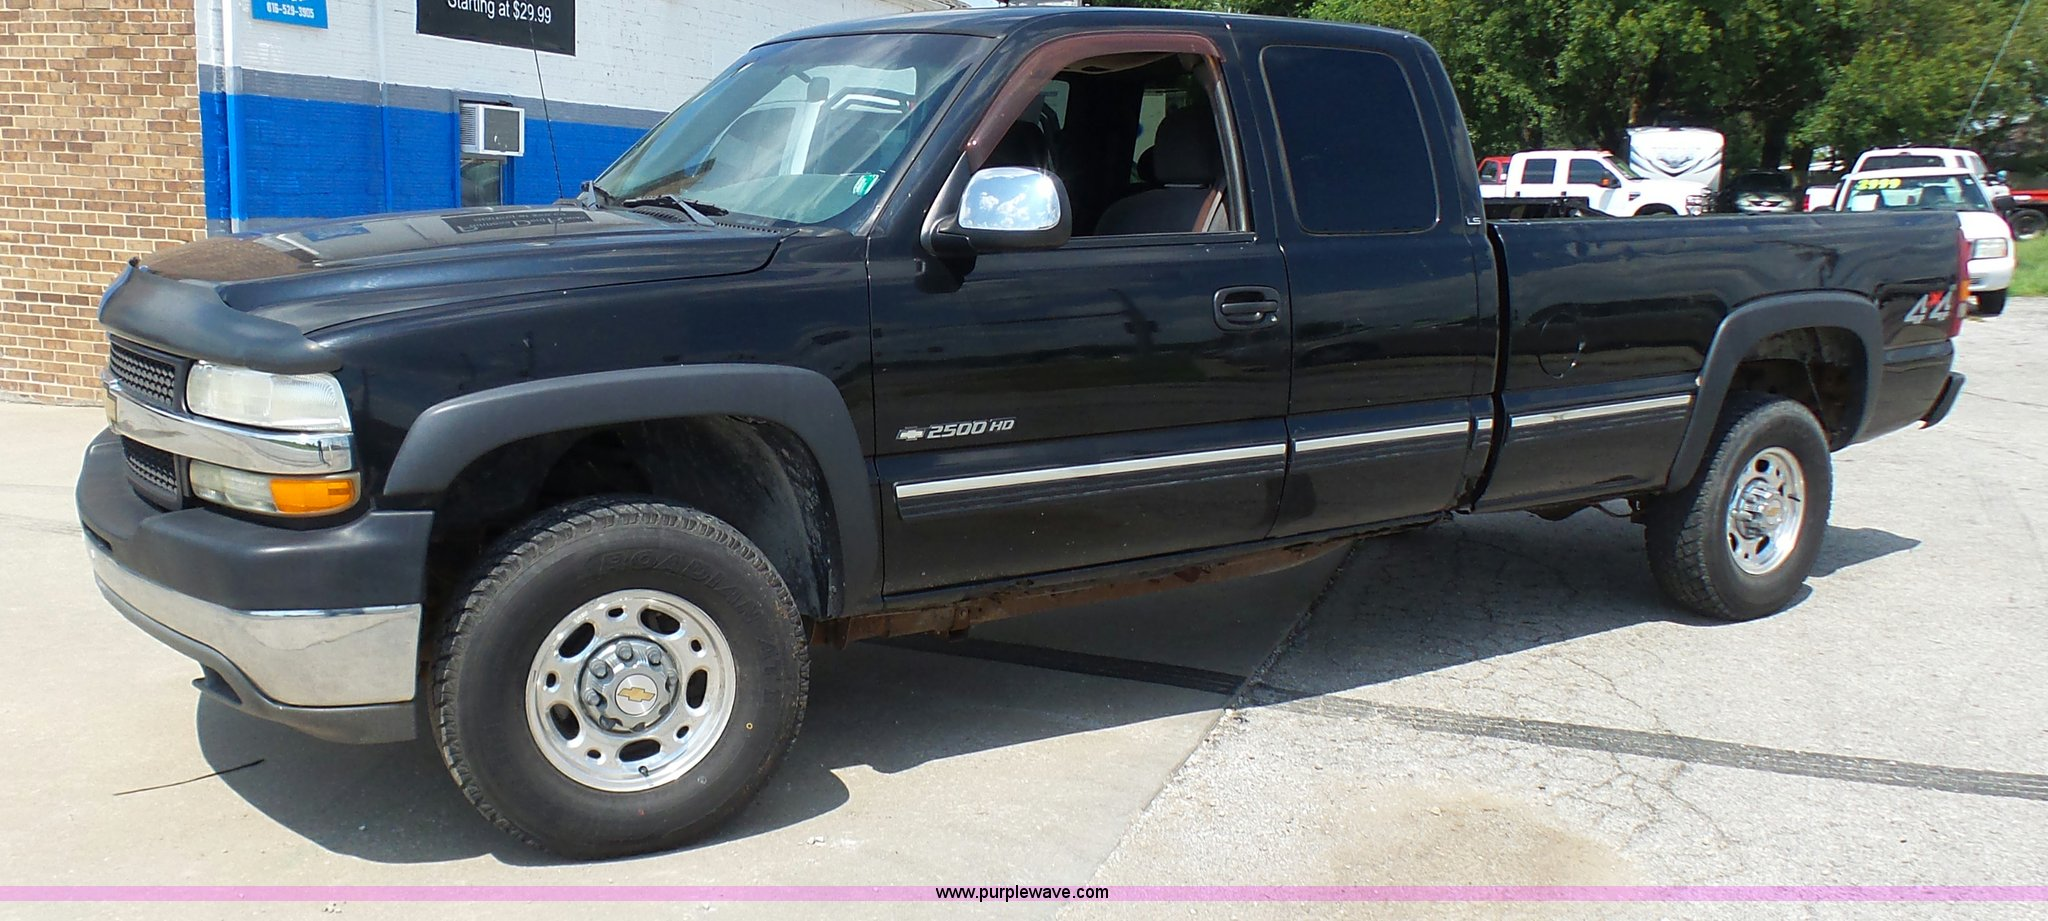 2001 chevrolet silverado 2500hd ls ext cab pickup truck for 2001 chevy silverado window motor